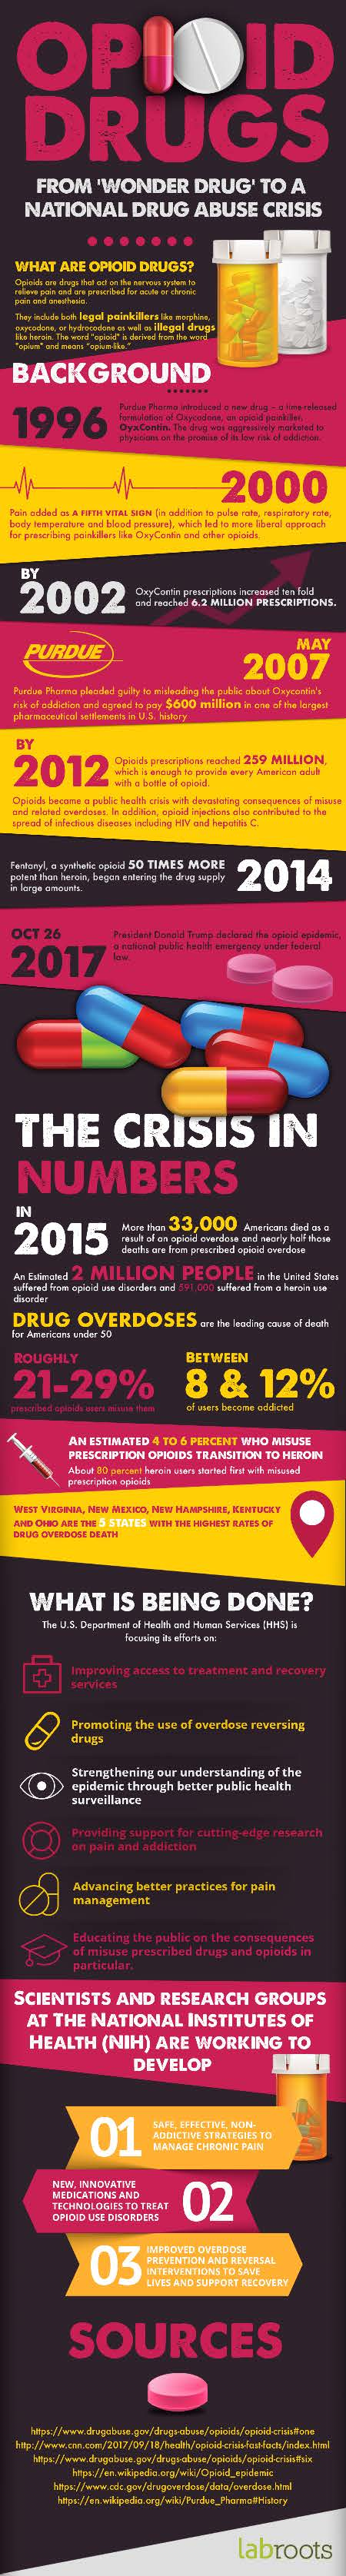 Opioid Drugs - From 'Wonder Drug' To A National Drug Abuse Crisis